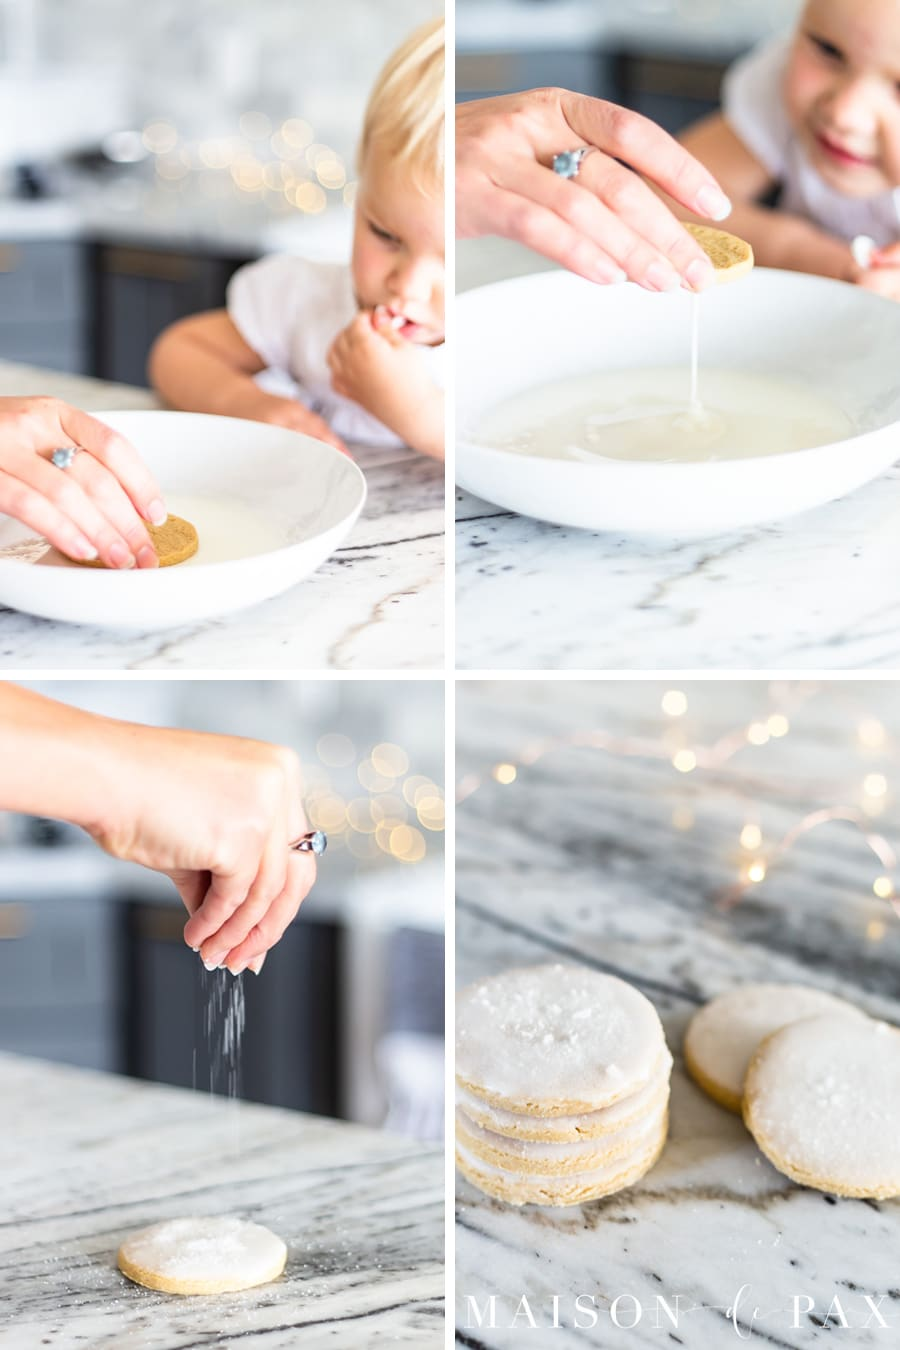 step by step for making icing glaze for sugar cookies | Maison de Pax